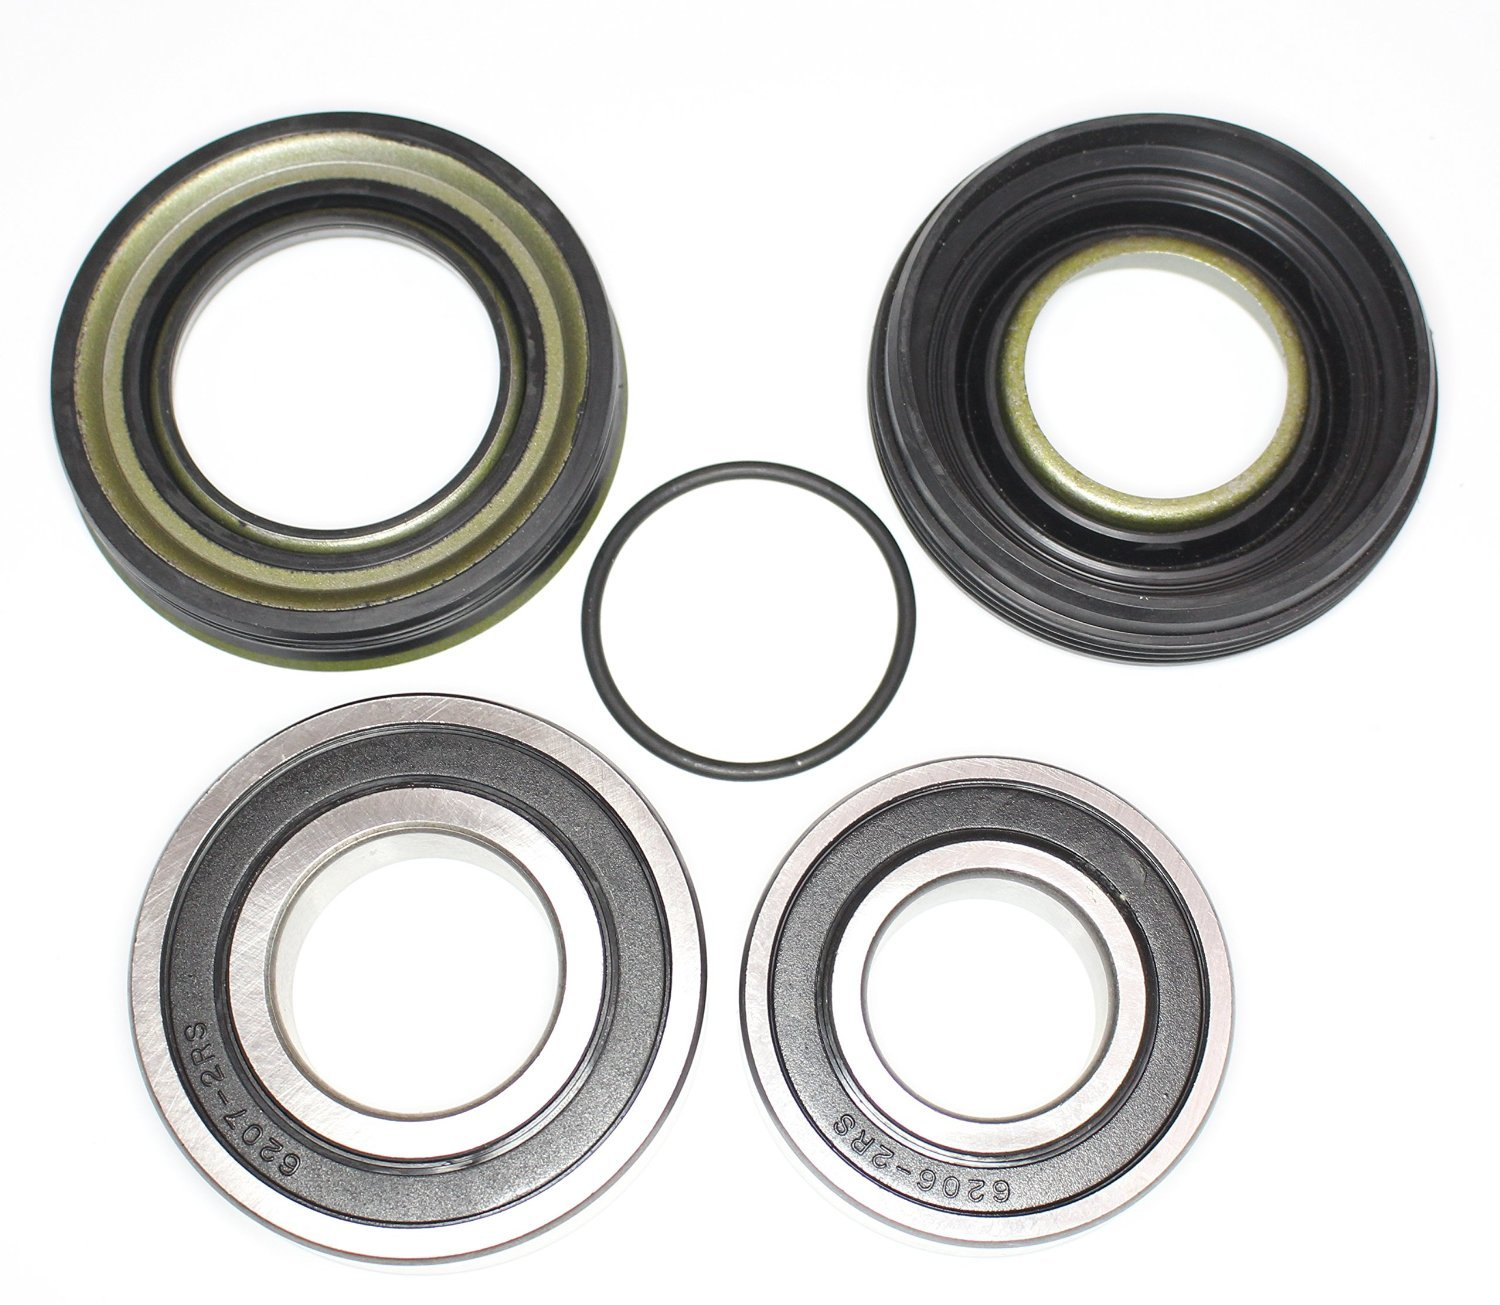 Maytag Neptune Washer Front Loader (2) Bearings, 2 Oil Seals, O-Ring kit 12002022